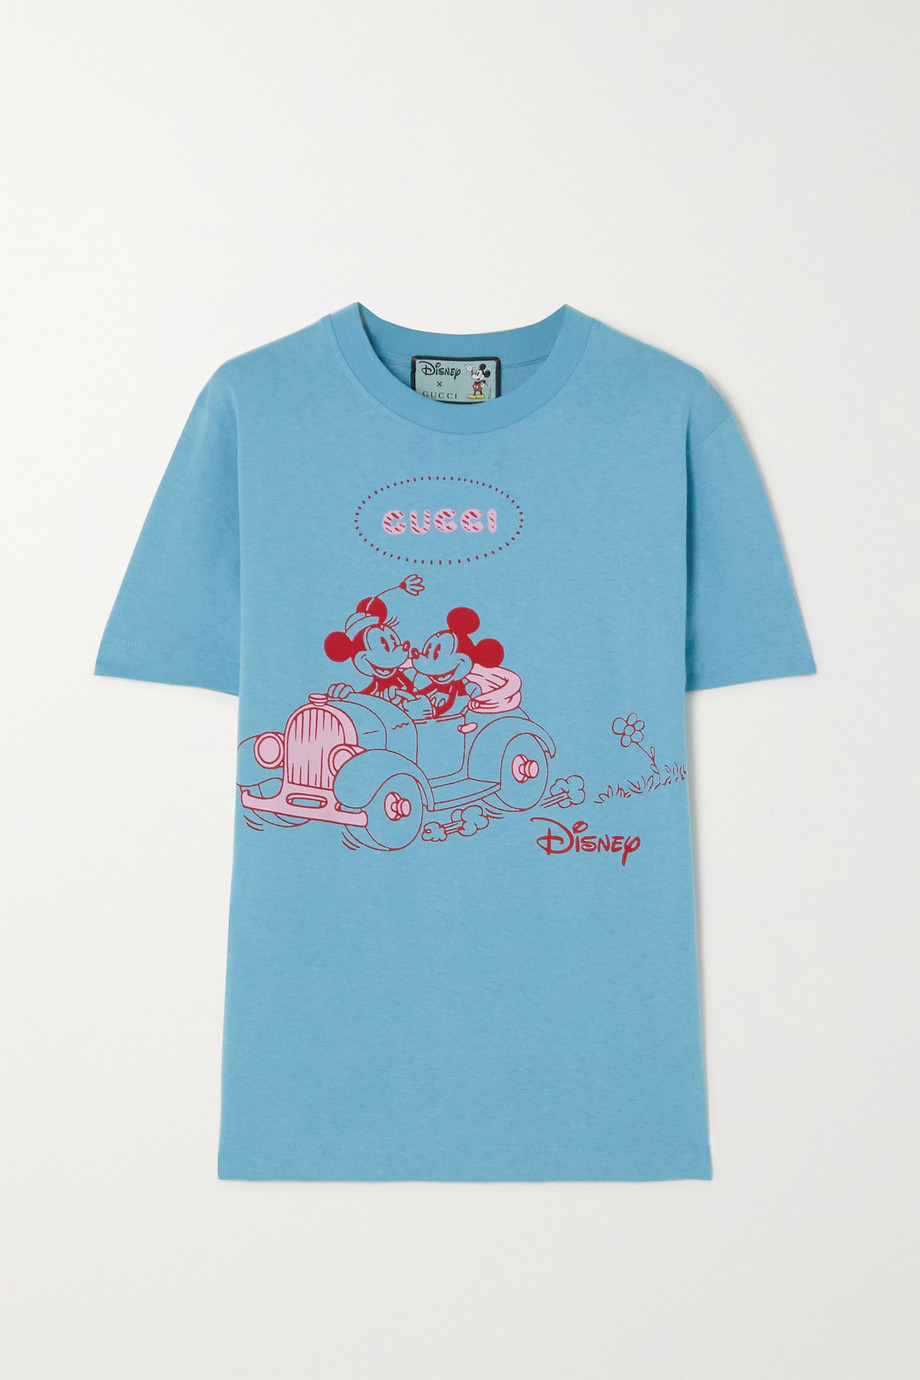 Gucci + Disney printed cotton-jersey T-shirt